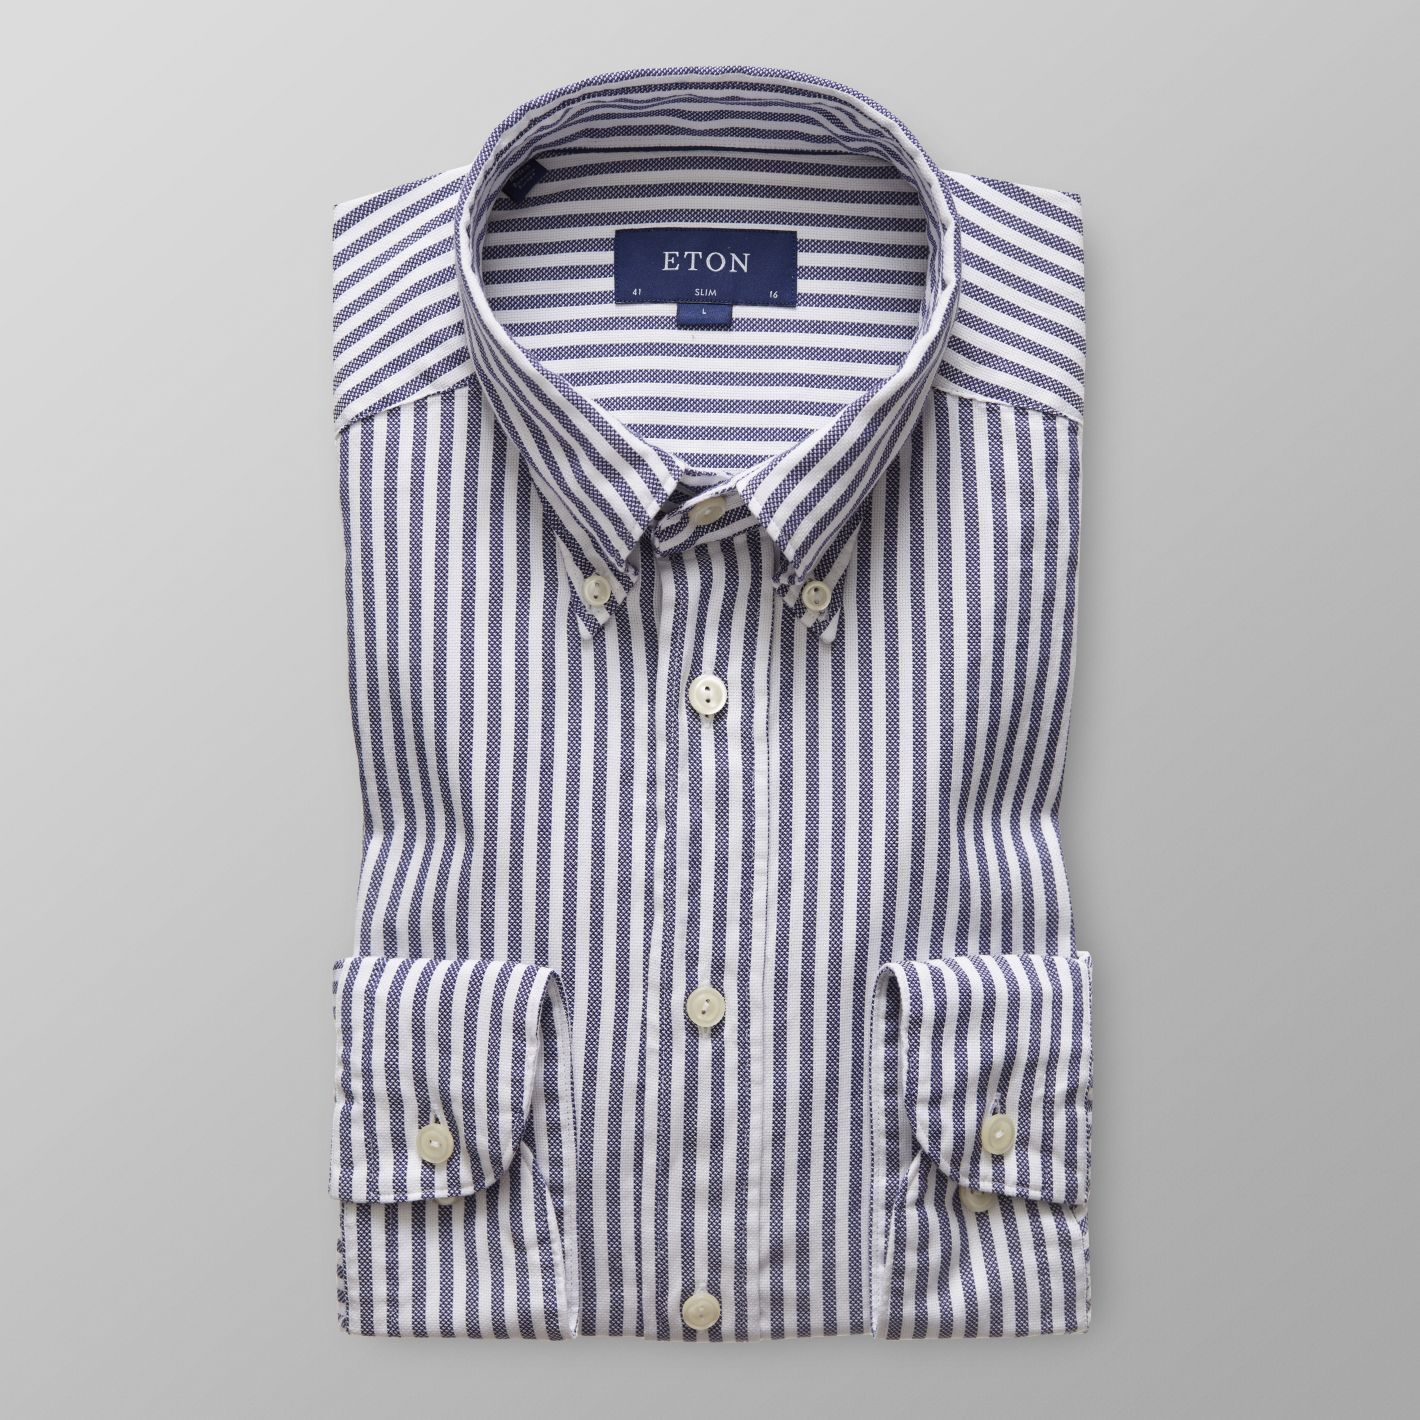 Navy Striped Royal Oxford Shirt      ETON      $185